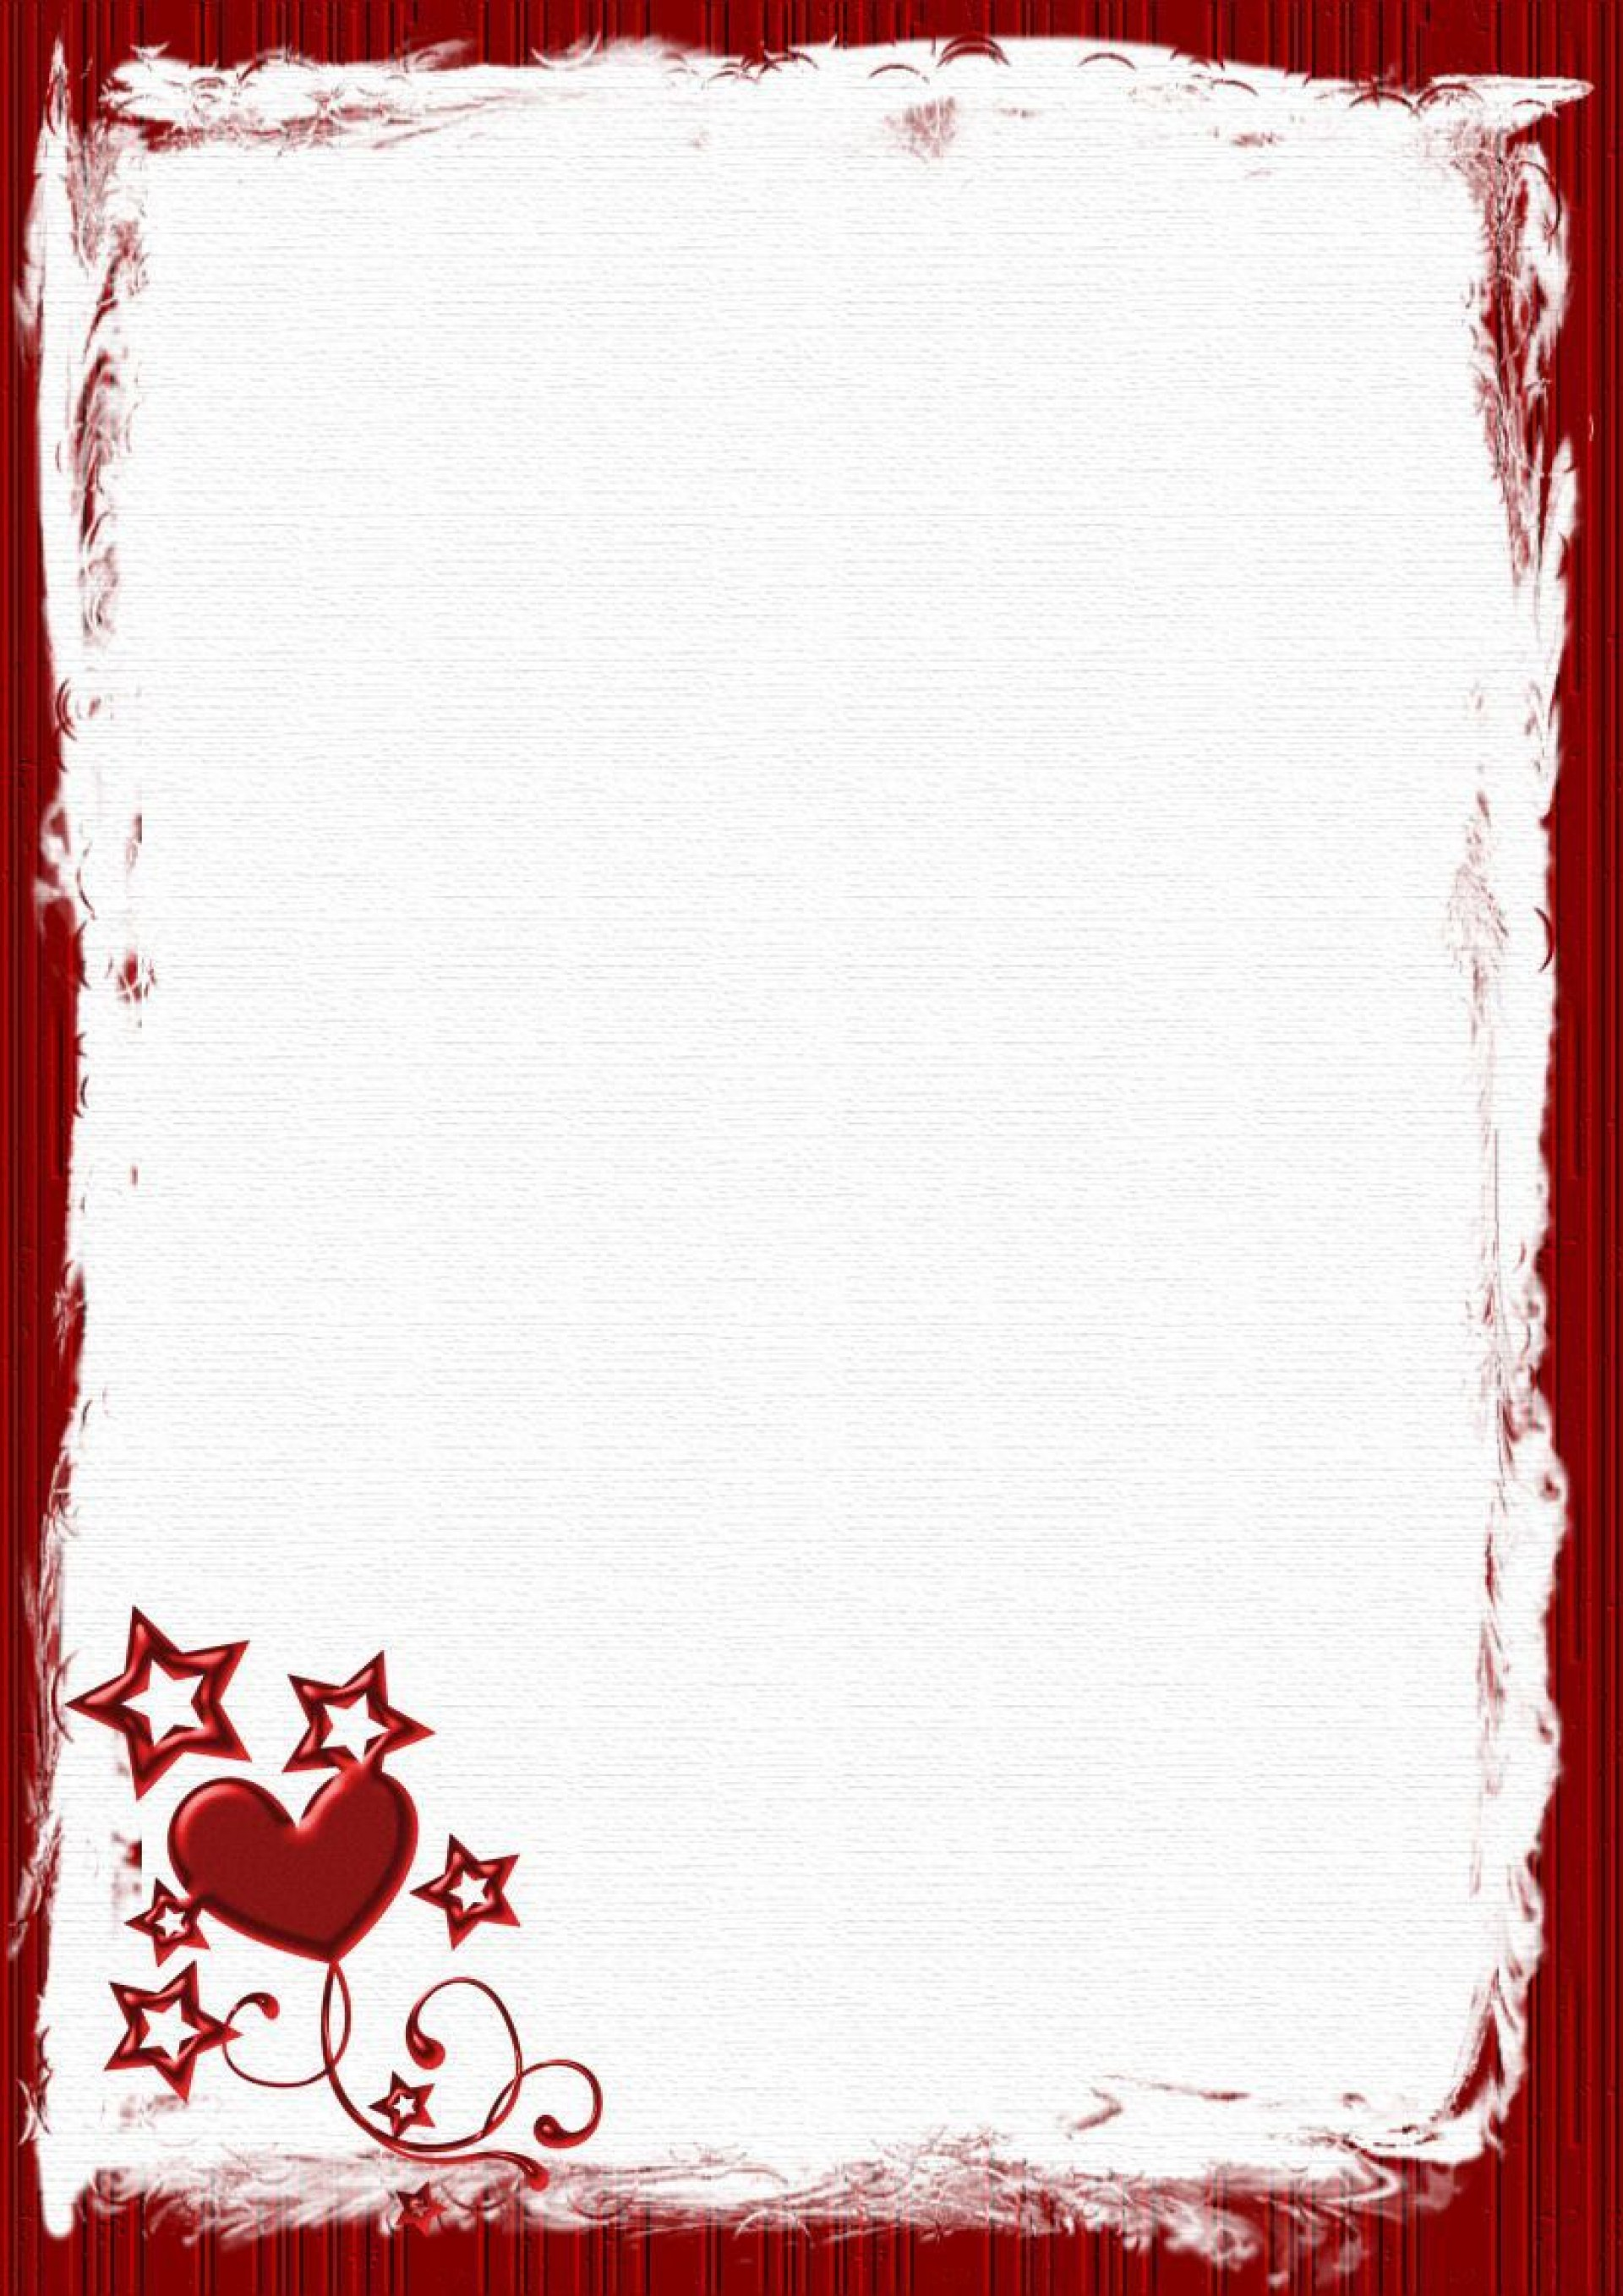 000 Beautiful Stationery Template For Word Sample  Free Christma1920